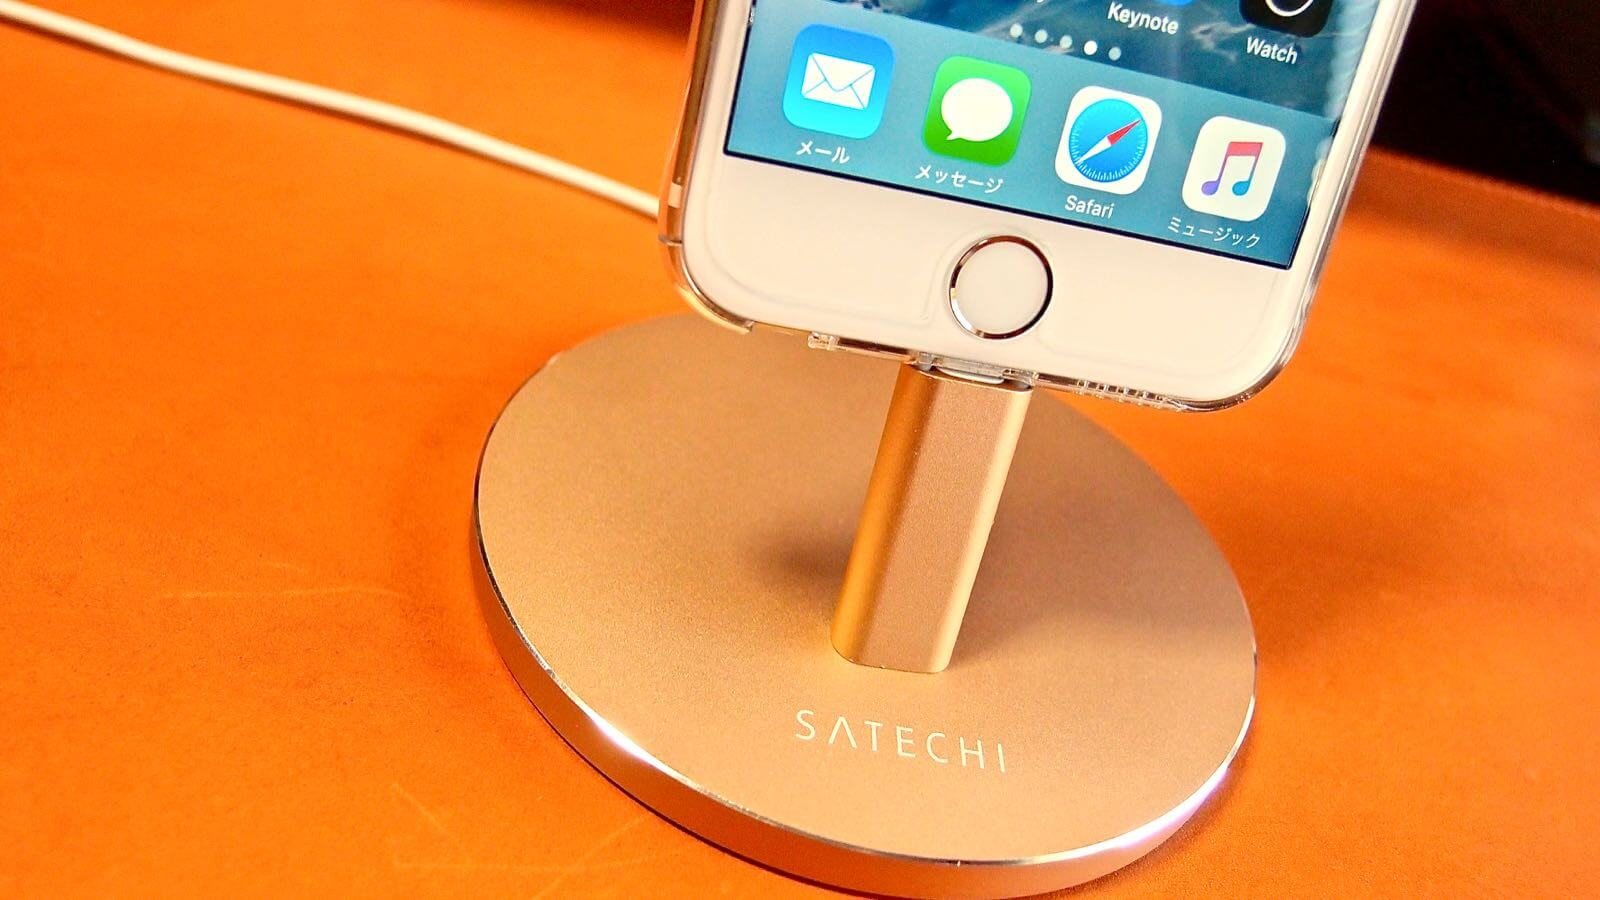 0166 Satechi iPhone Charging Stand Review  26